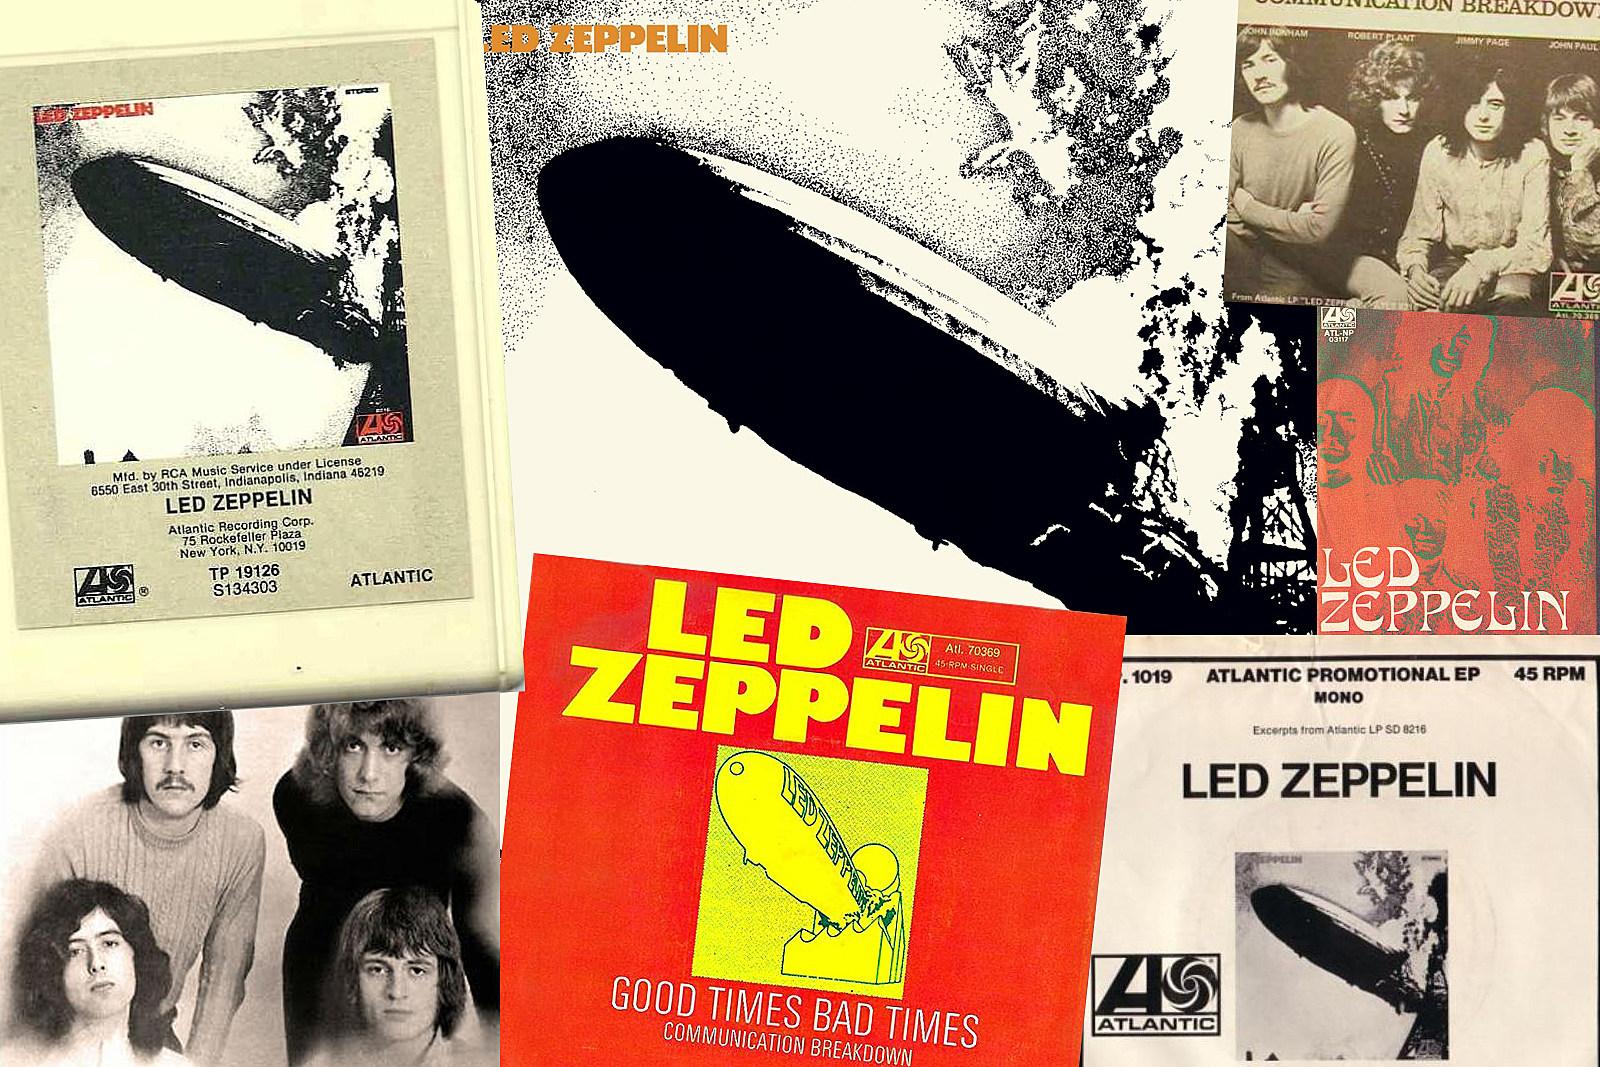 By Track Zeppelin'A Led 'led Zeppelin Guide FKJ1Tcl